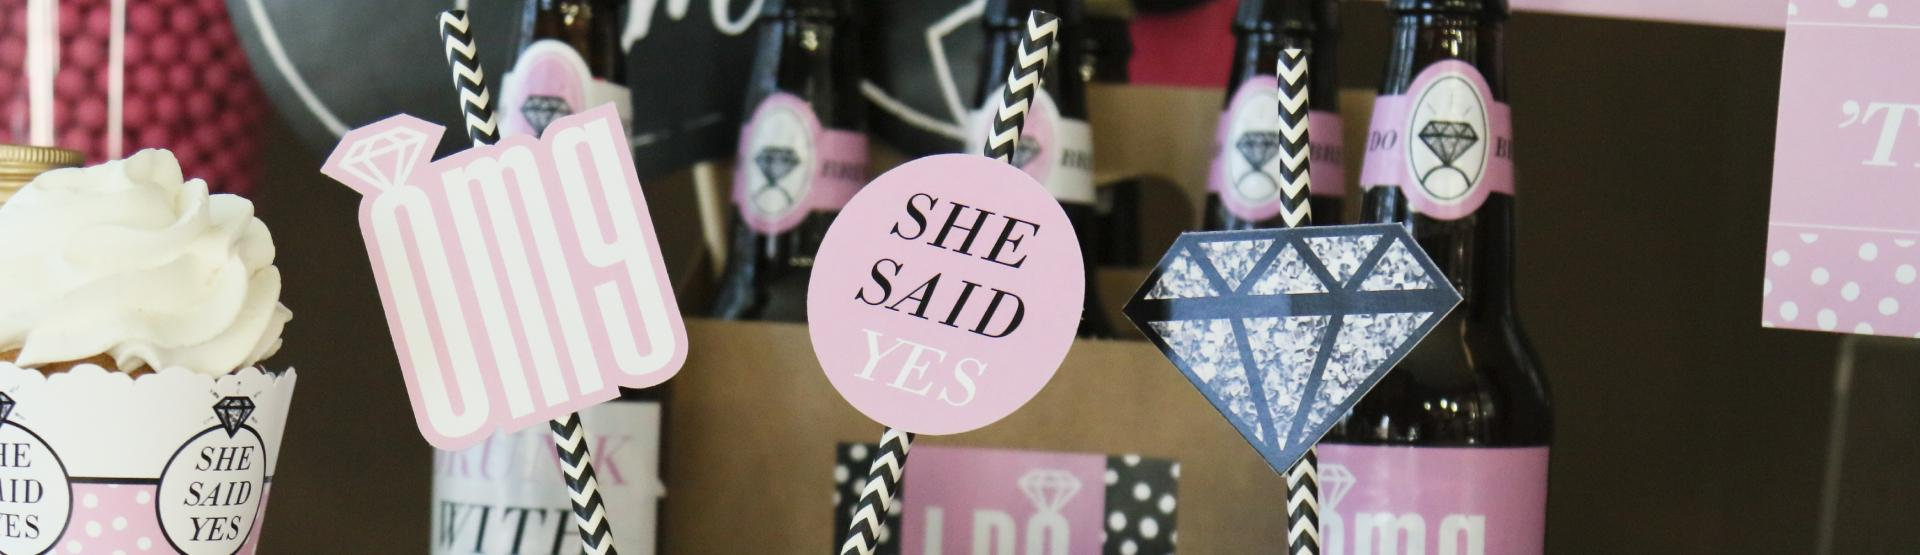 OMG, You're Getting Marries! - Engagement Party Ideas